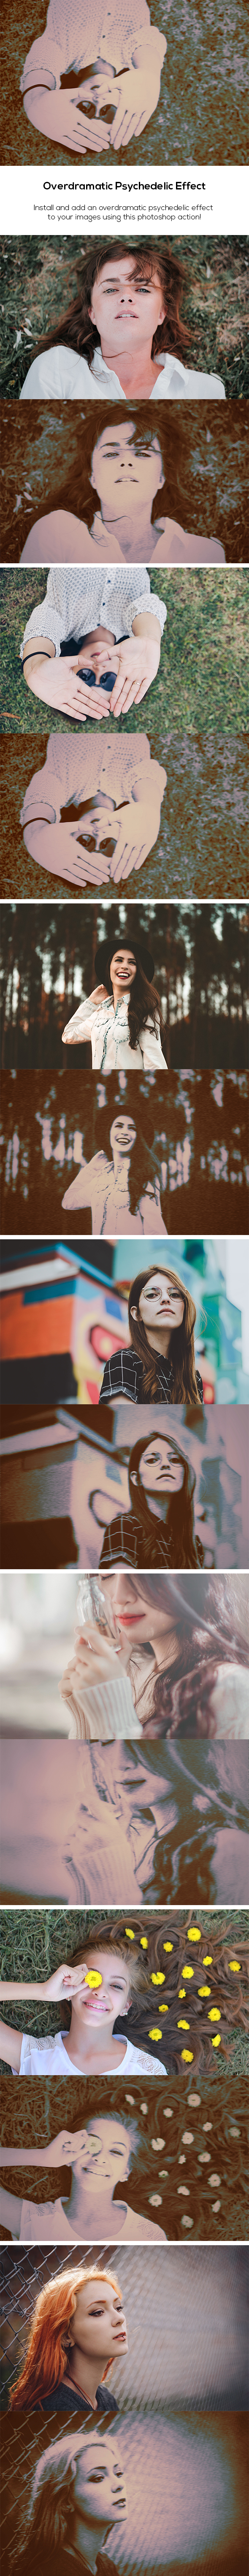 Overdramatic Psychedelic Effect - Photo Effects Actions